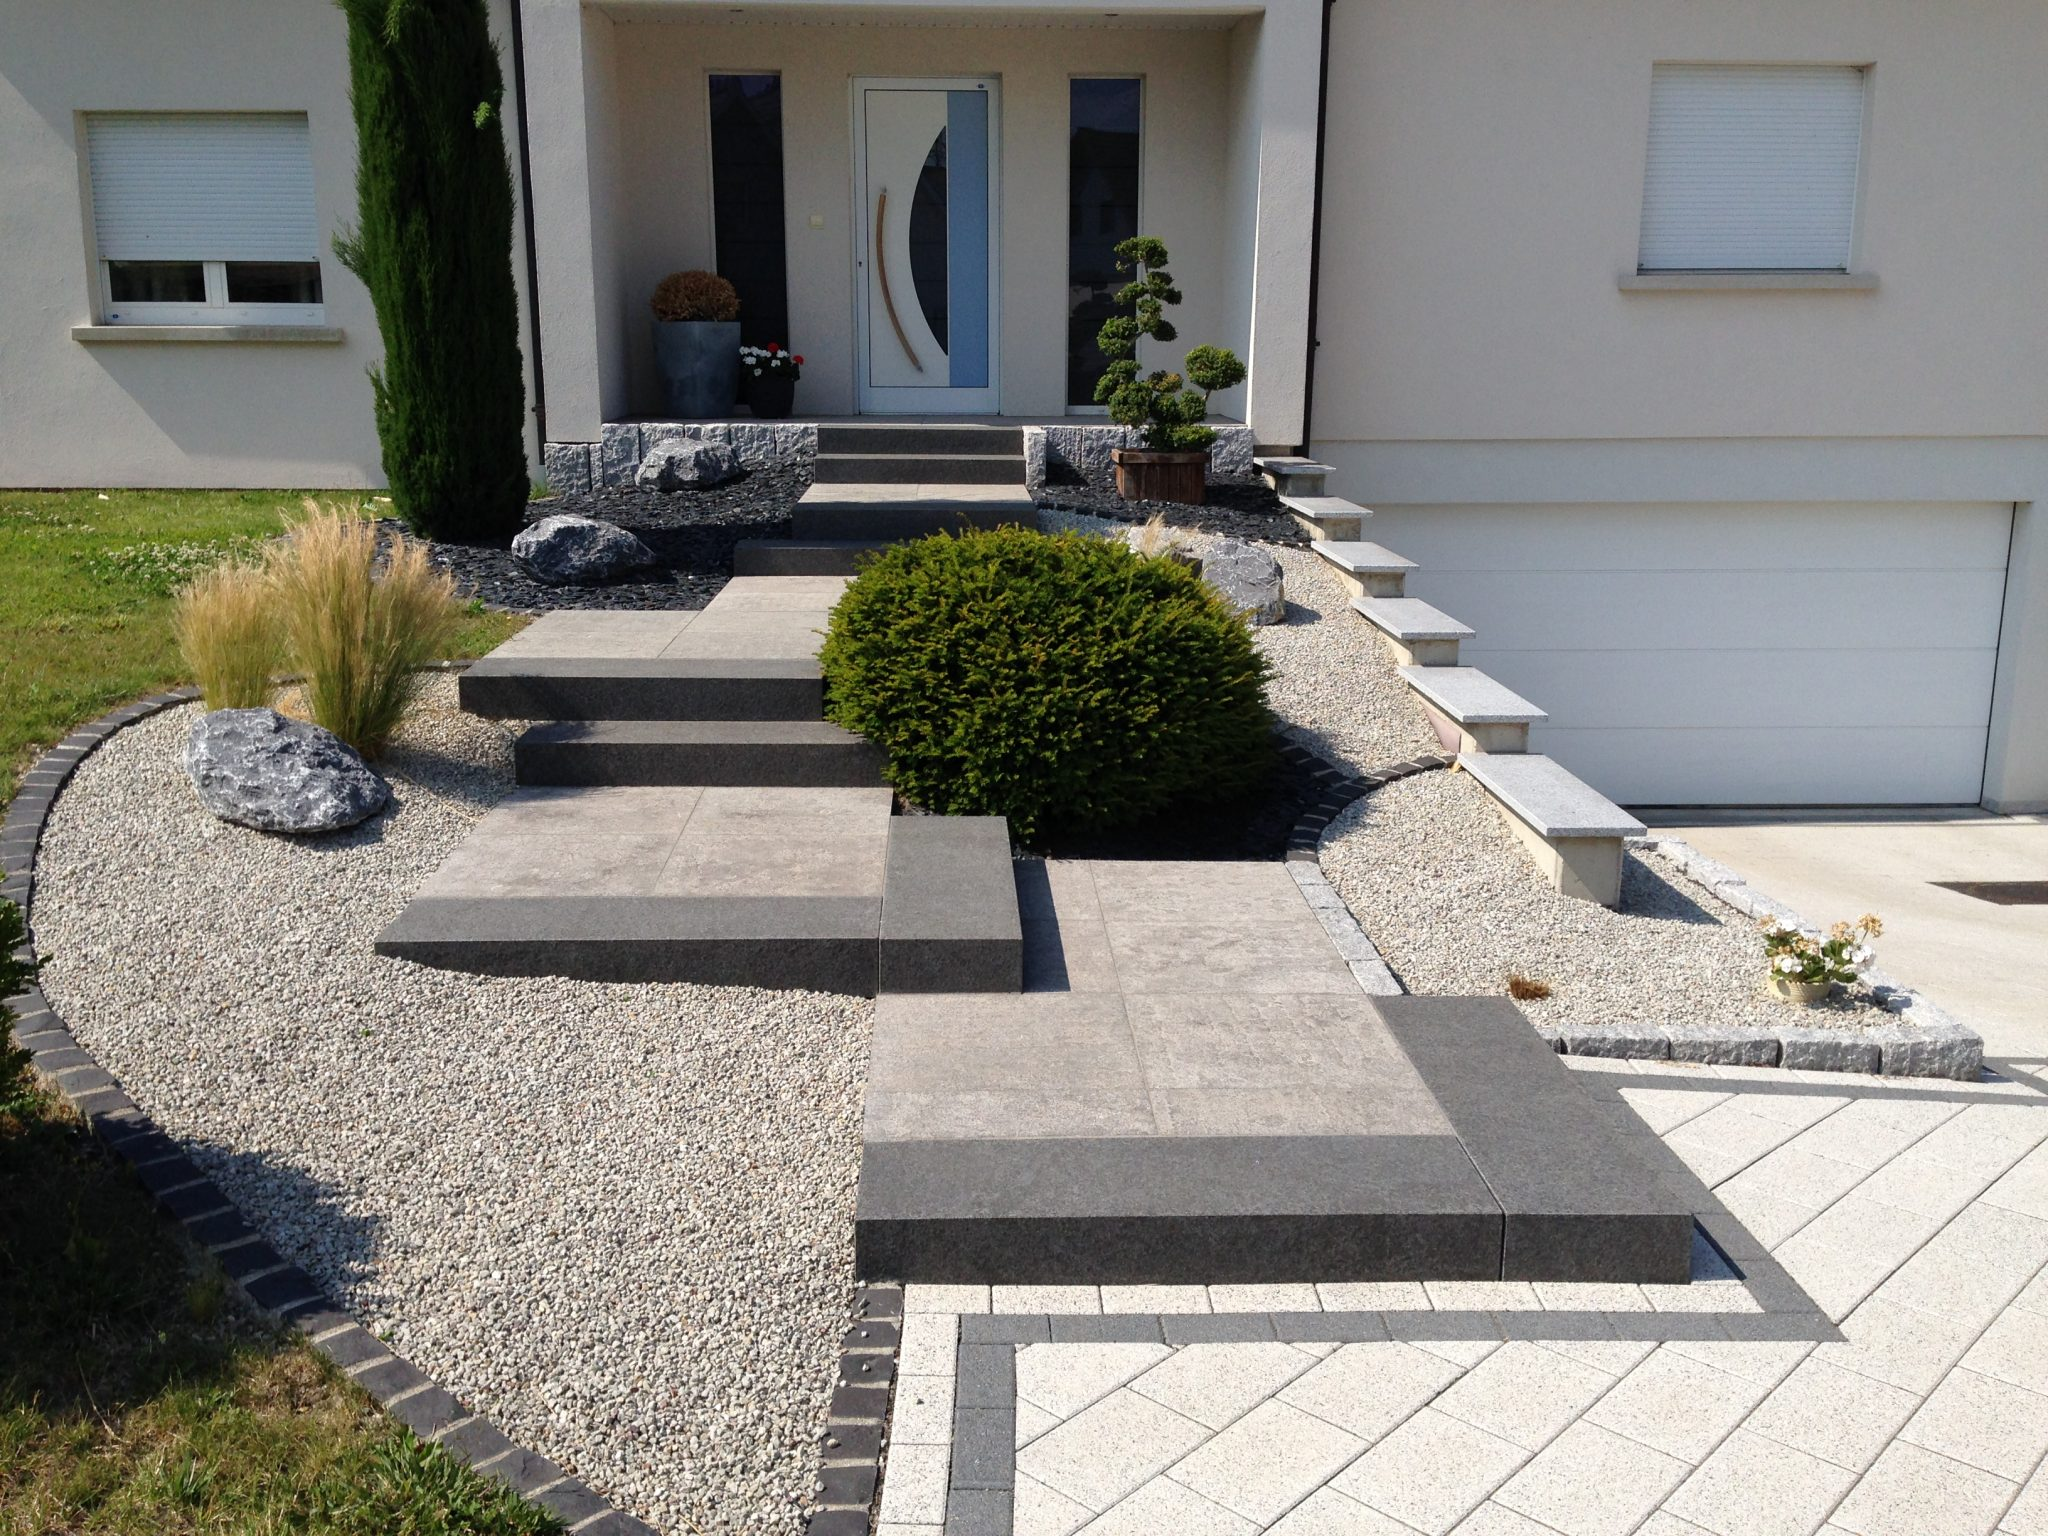 Amenagement exterieur mc immo for Amenagement jardin exterieur